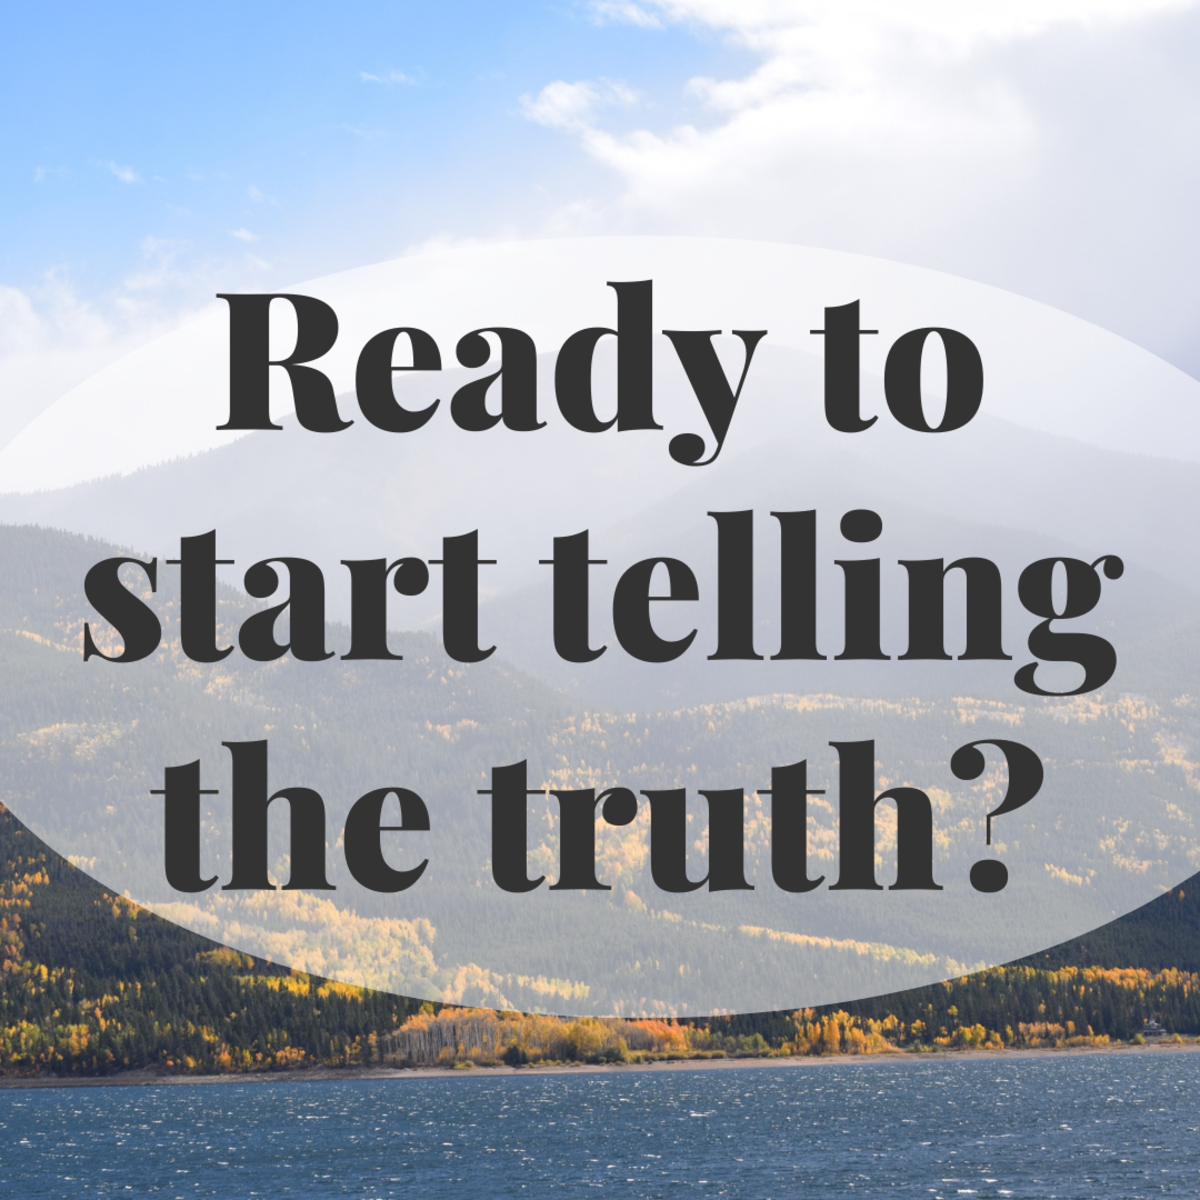 Pathological lying is the chronic behavior of compulsive or habitual lying. This article will show you what to do if you have told a lie.